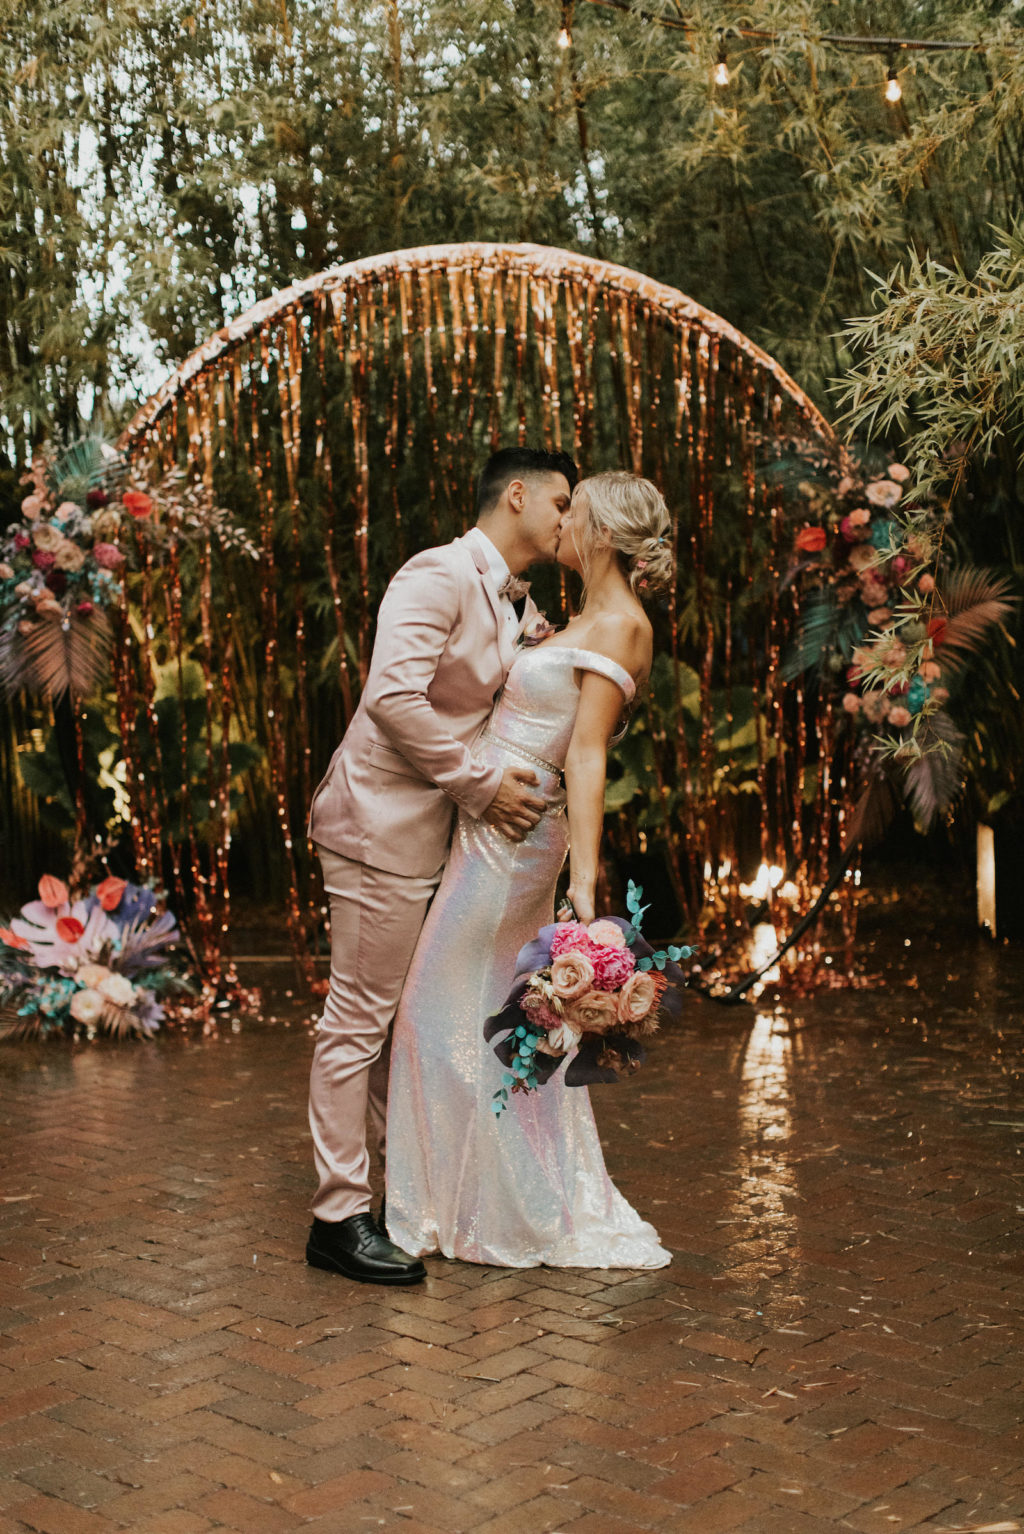 Iridescent Pastel 90's Wedding Inspiration | Wedding Arch Backdrop with Rose Gold Tinsel Curtain and Pastel Flower Arrangements with Painted Leaves | Bride and Groom Portrait with Blush Pink Suit and Shimmer Silver Wedding Dress | Downtown St. Pete Wedding Venue NOVA 535